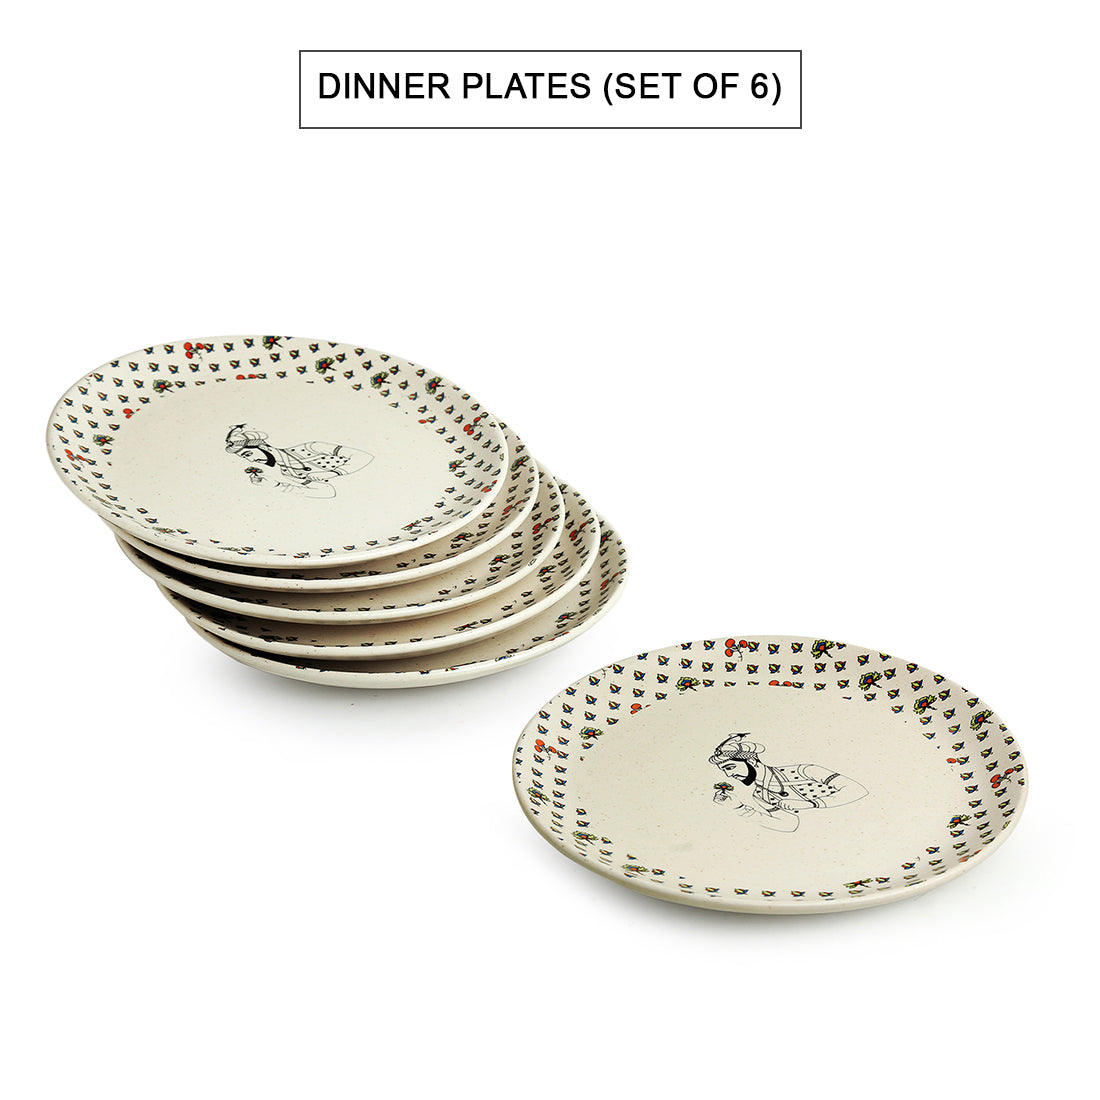 'Daawat-e-Taj' Handcrafted Ceramic Dinner Plates (Set of 6, Microwave Safe)